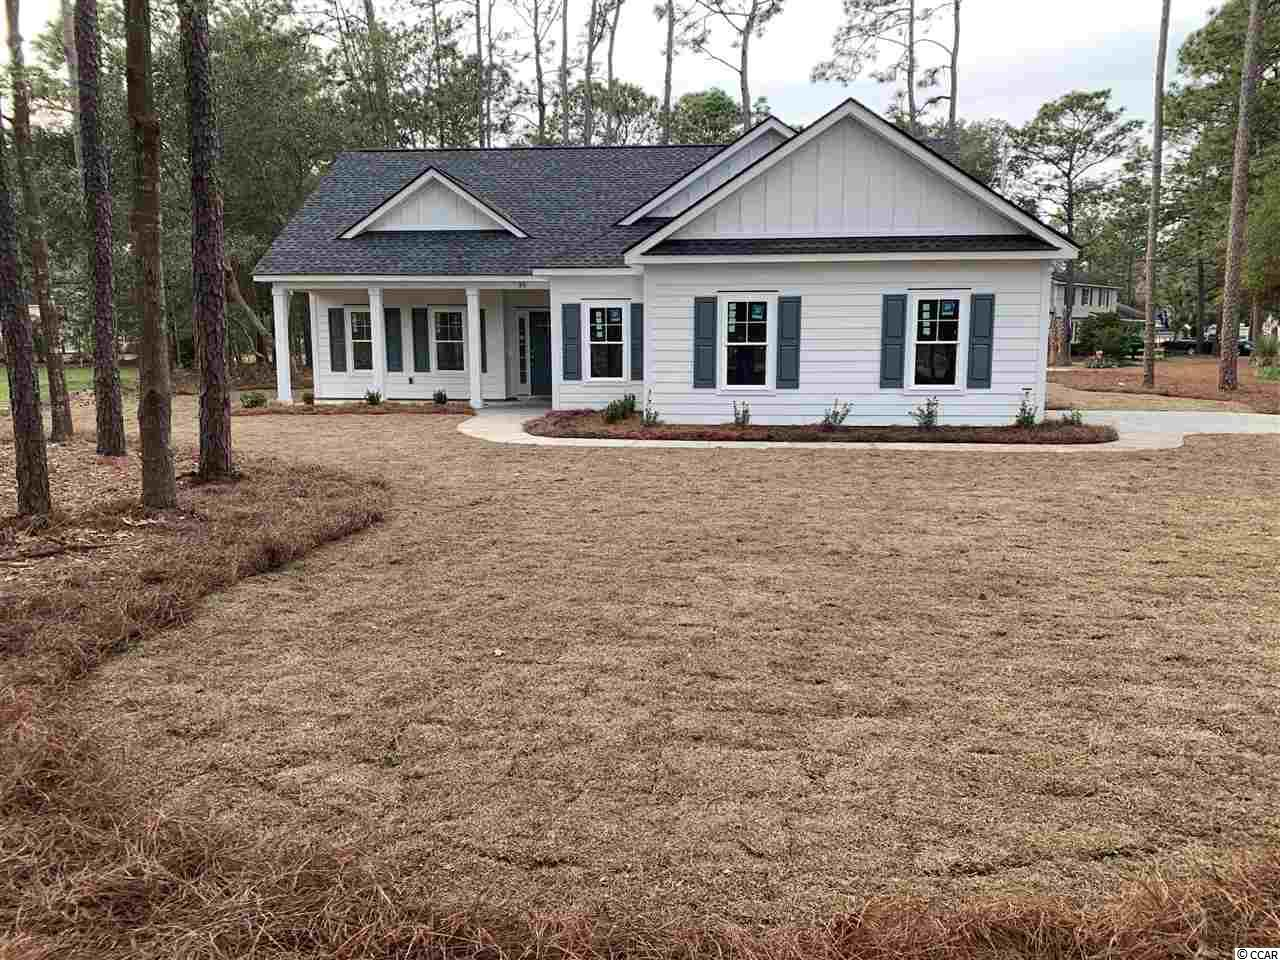 Brand New Construction. Beautiful home on big lot. All the perks: Hardie siding, granite, hard woods, open floor plan, stainless appliances, no HOA